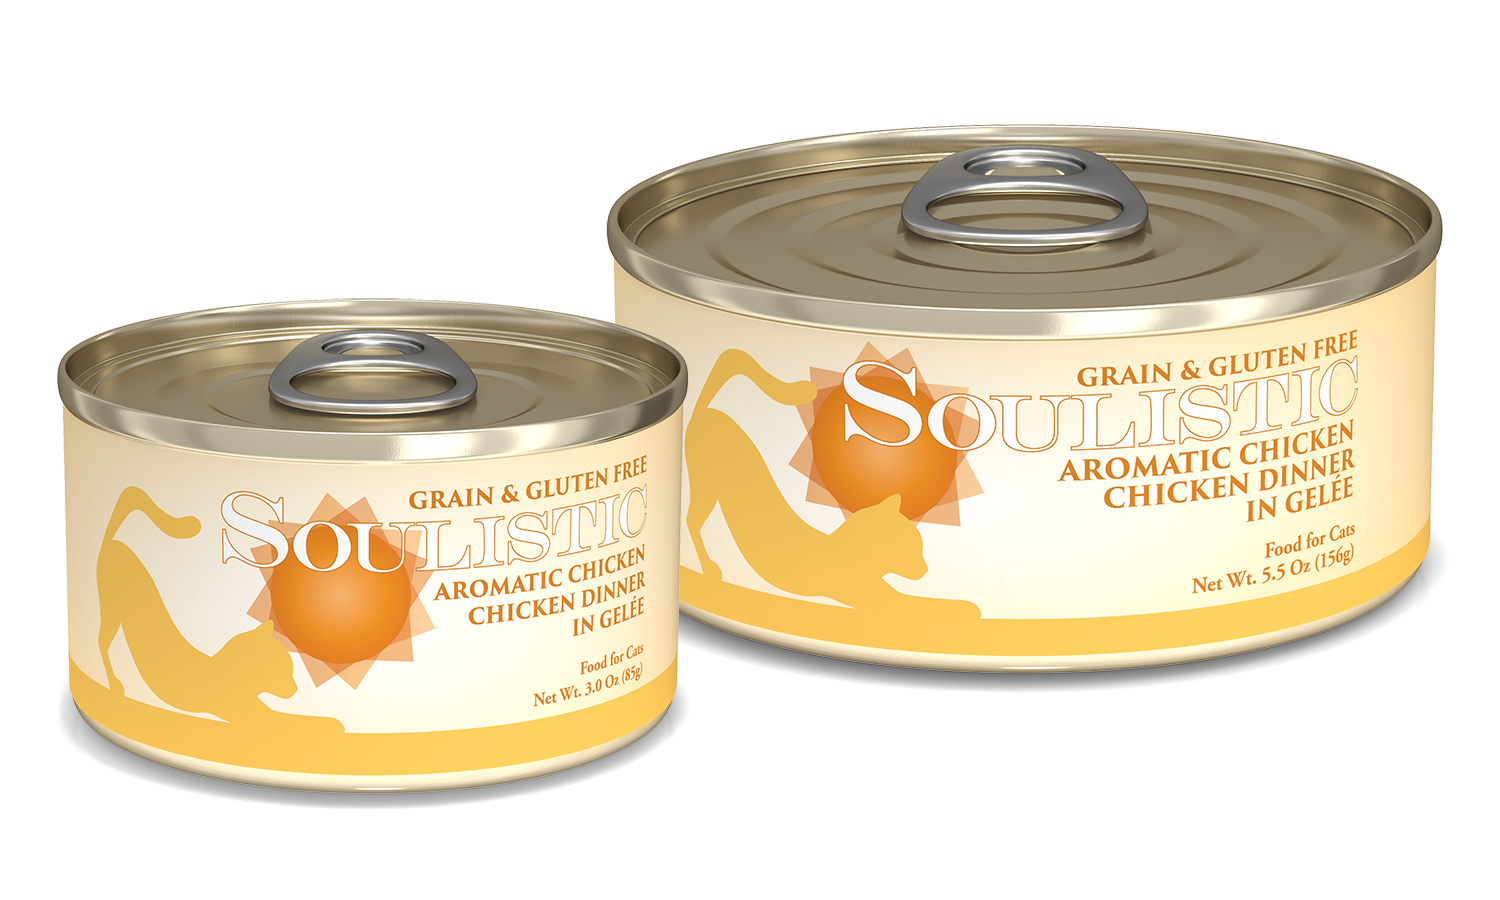 SOULISTIC-AROMATIC-CHICKEN-comb-cans.png